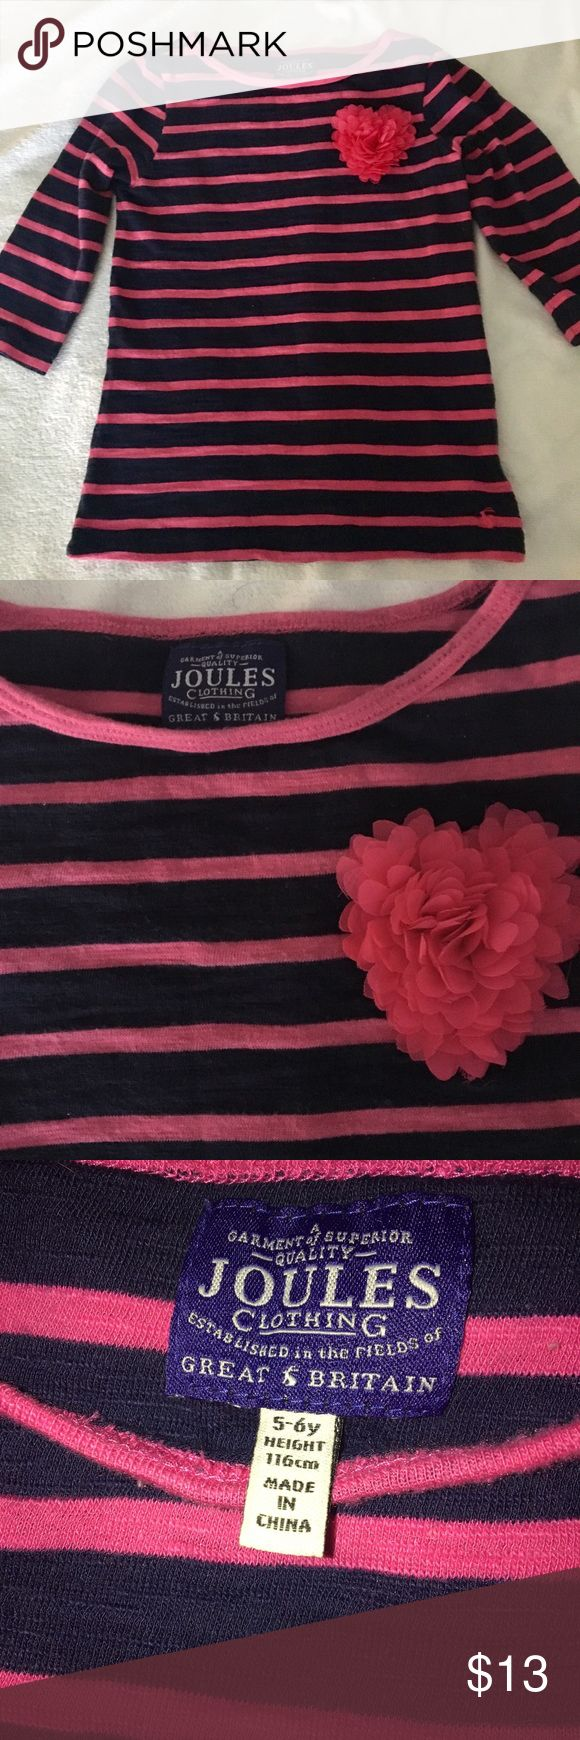 Joules top 3/4 sleeve girls 5/6 EUC Navy blue and hot pink joules top for girls- adorable heart embellishment on chest and signature lil bunny on bottom Joules Shirts & Tops Tees - Short Sleeve